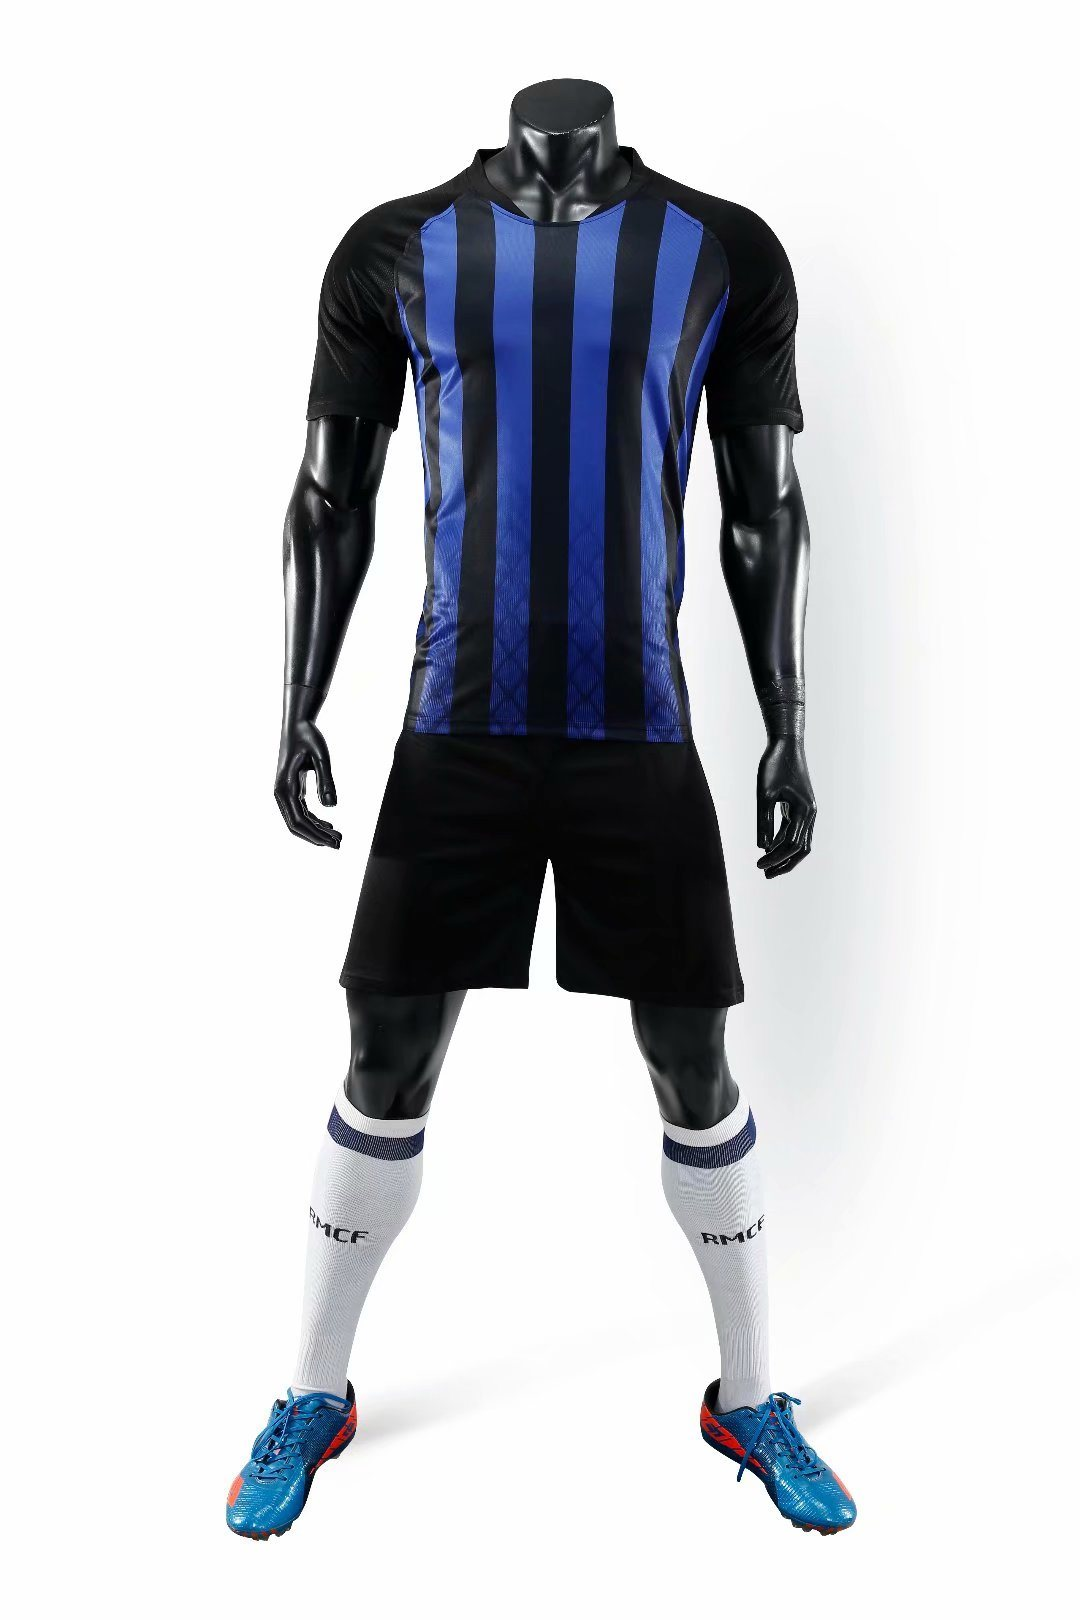 online retailer 08d0e 3b239 [Hot Item] 2018/2019 Inter Milan Home Soccer Jerseys and Shorts